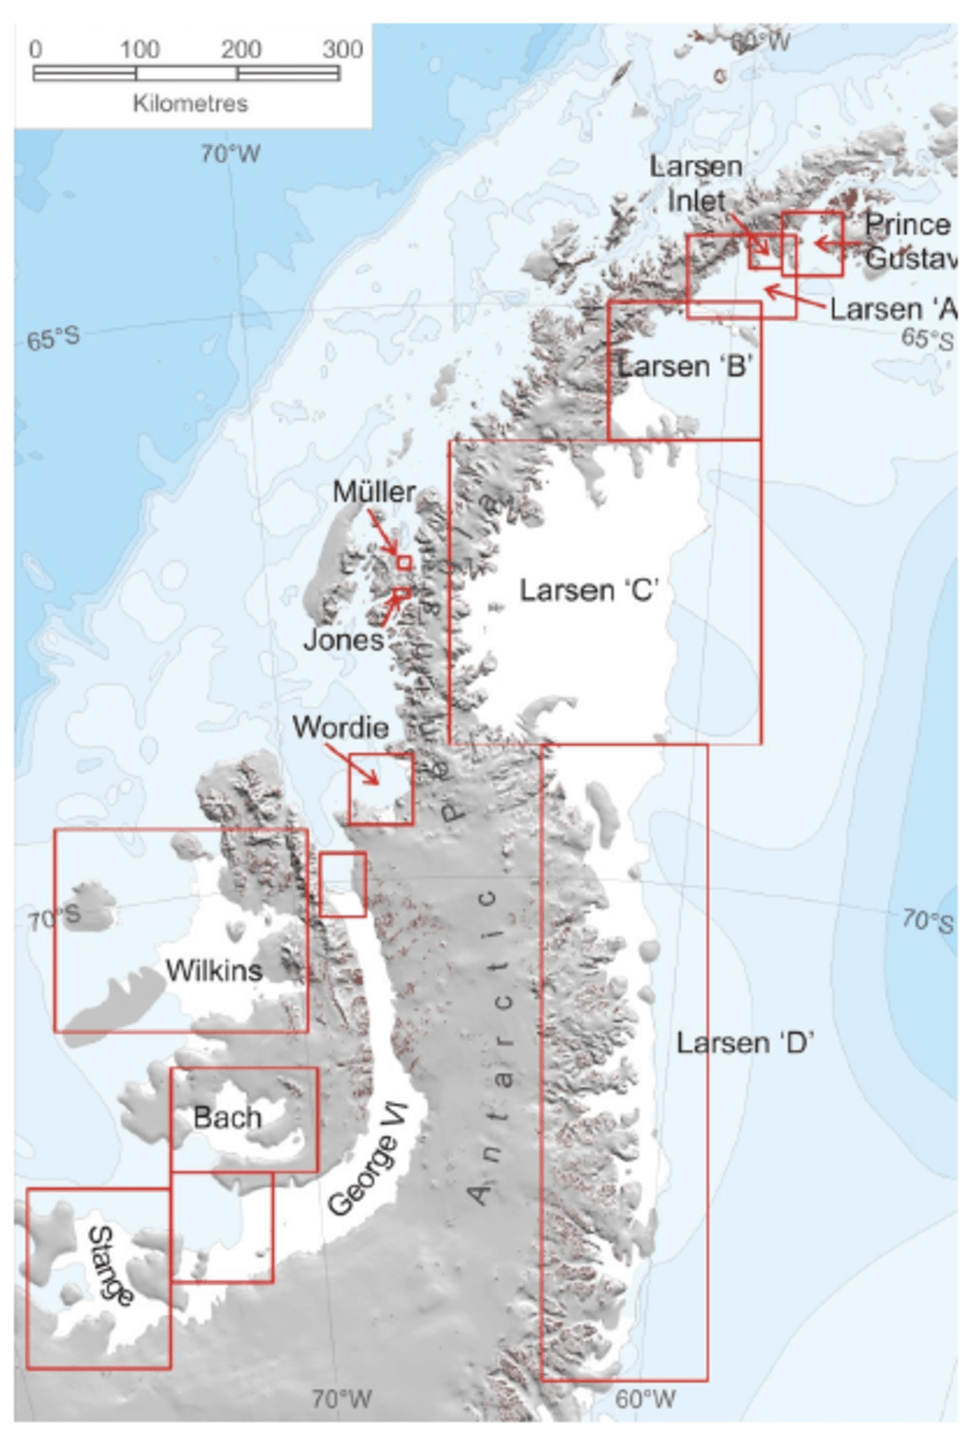 The ice shelves of the Antarctic peninsula. Note Larsen A and B have largely disappeared.